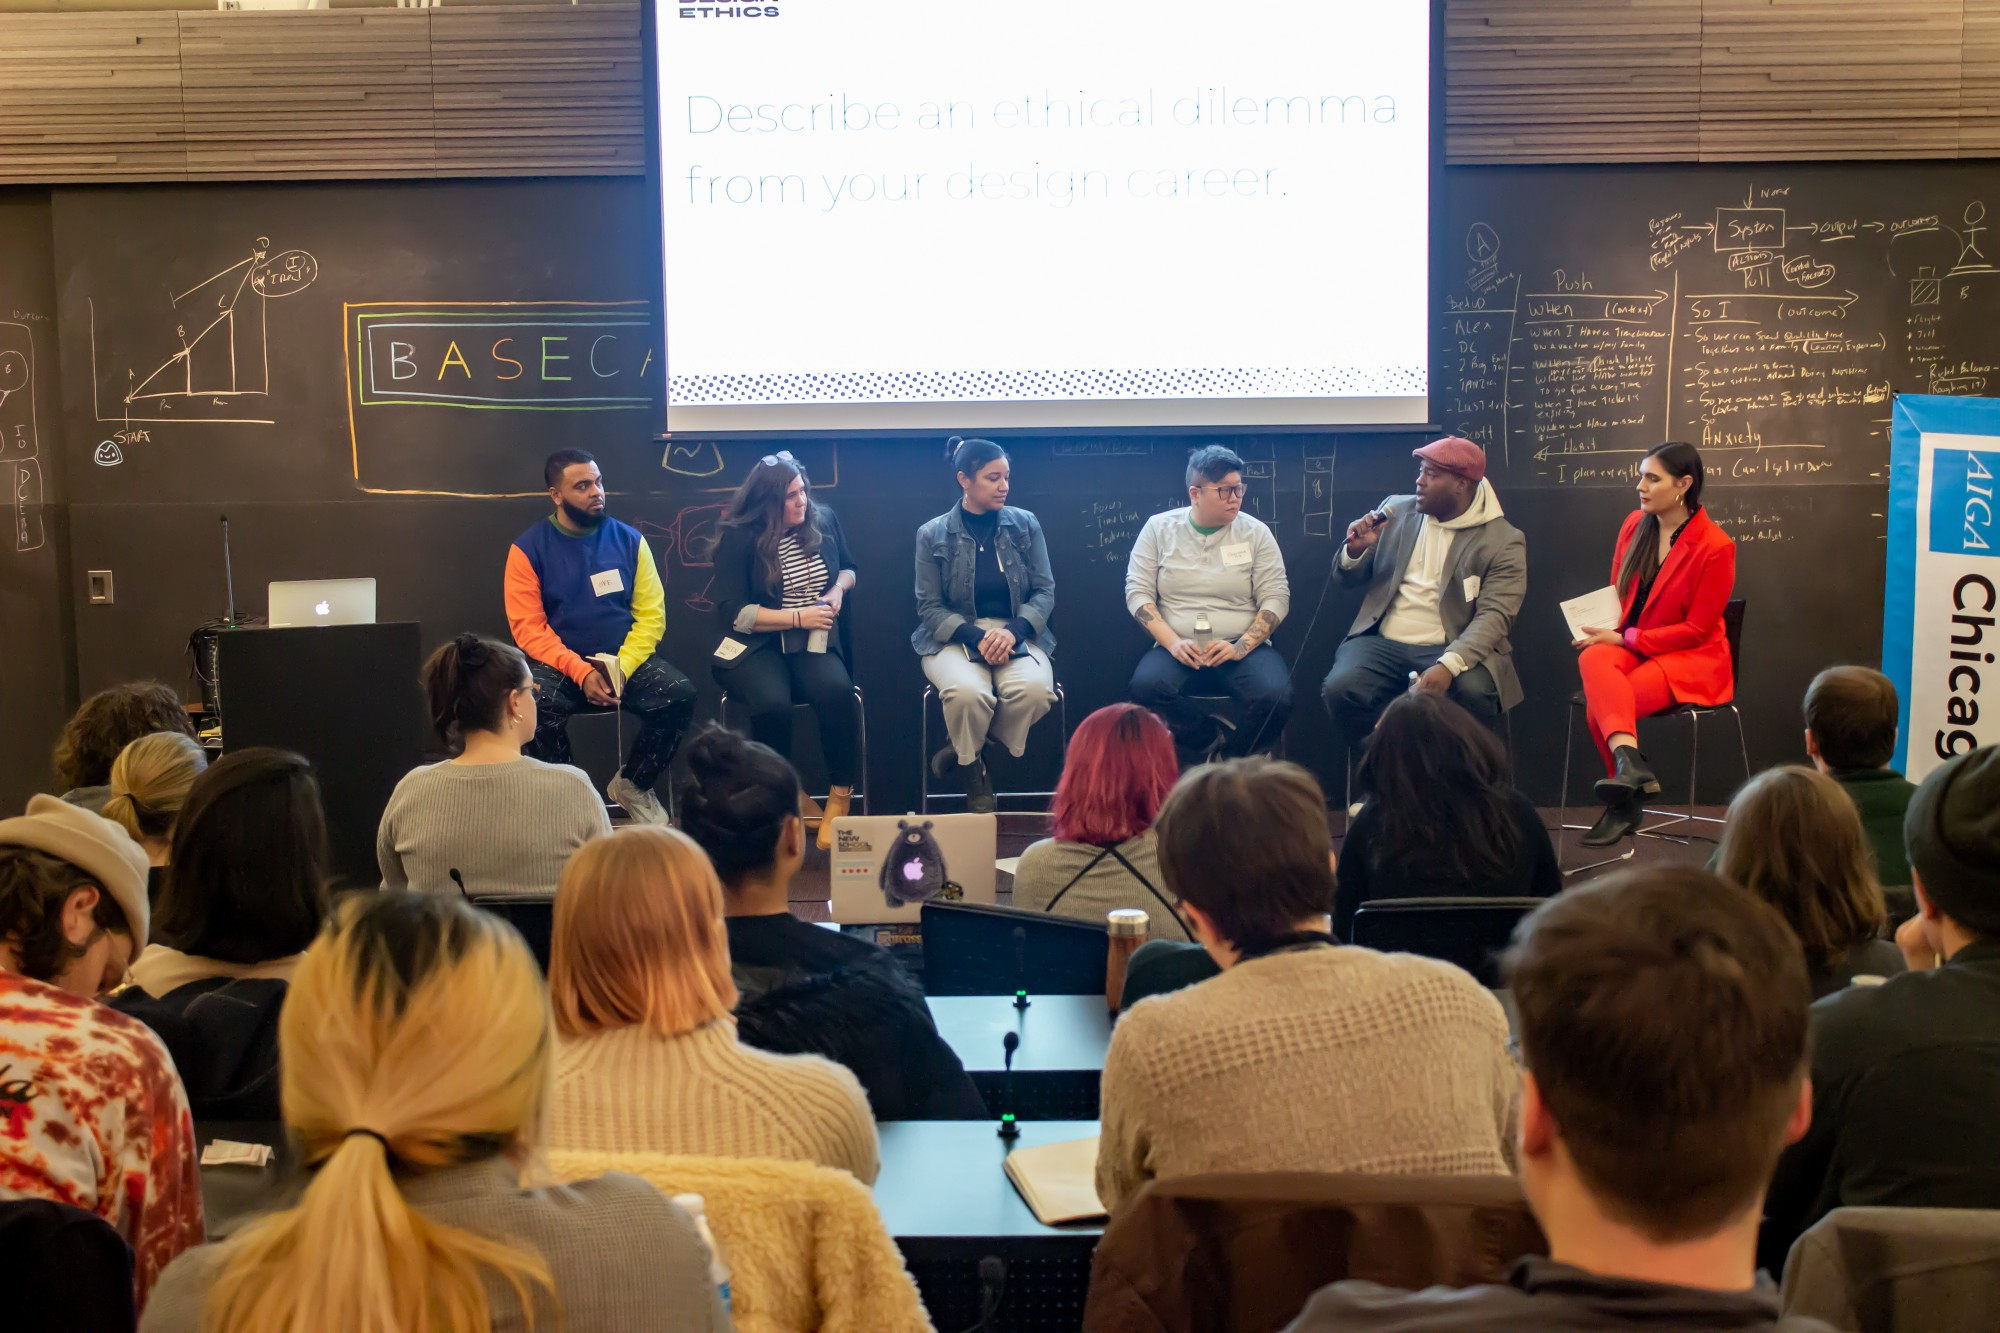 Image of panel discussion at the AIGA Chicago Design Ethics Roundtable event, hosted at Basecamp.